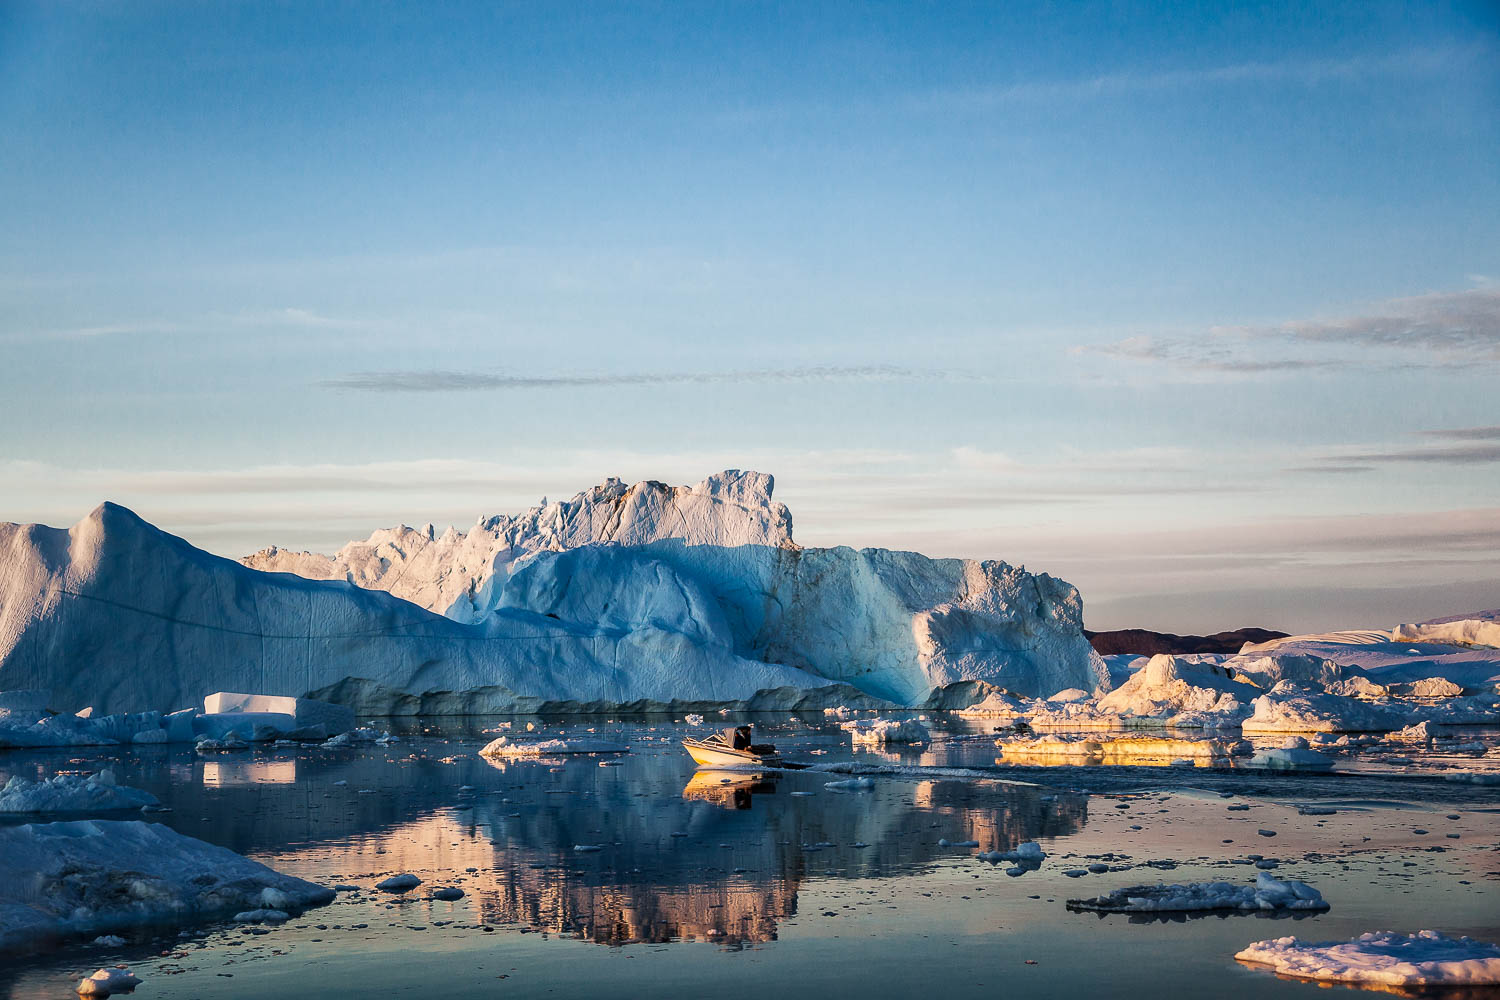 Fishing Boat and Icebergs, Ilulissat Icefjord, Greenland